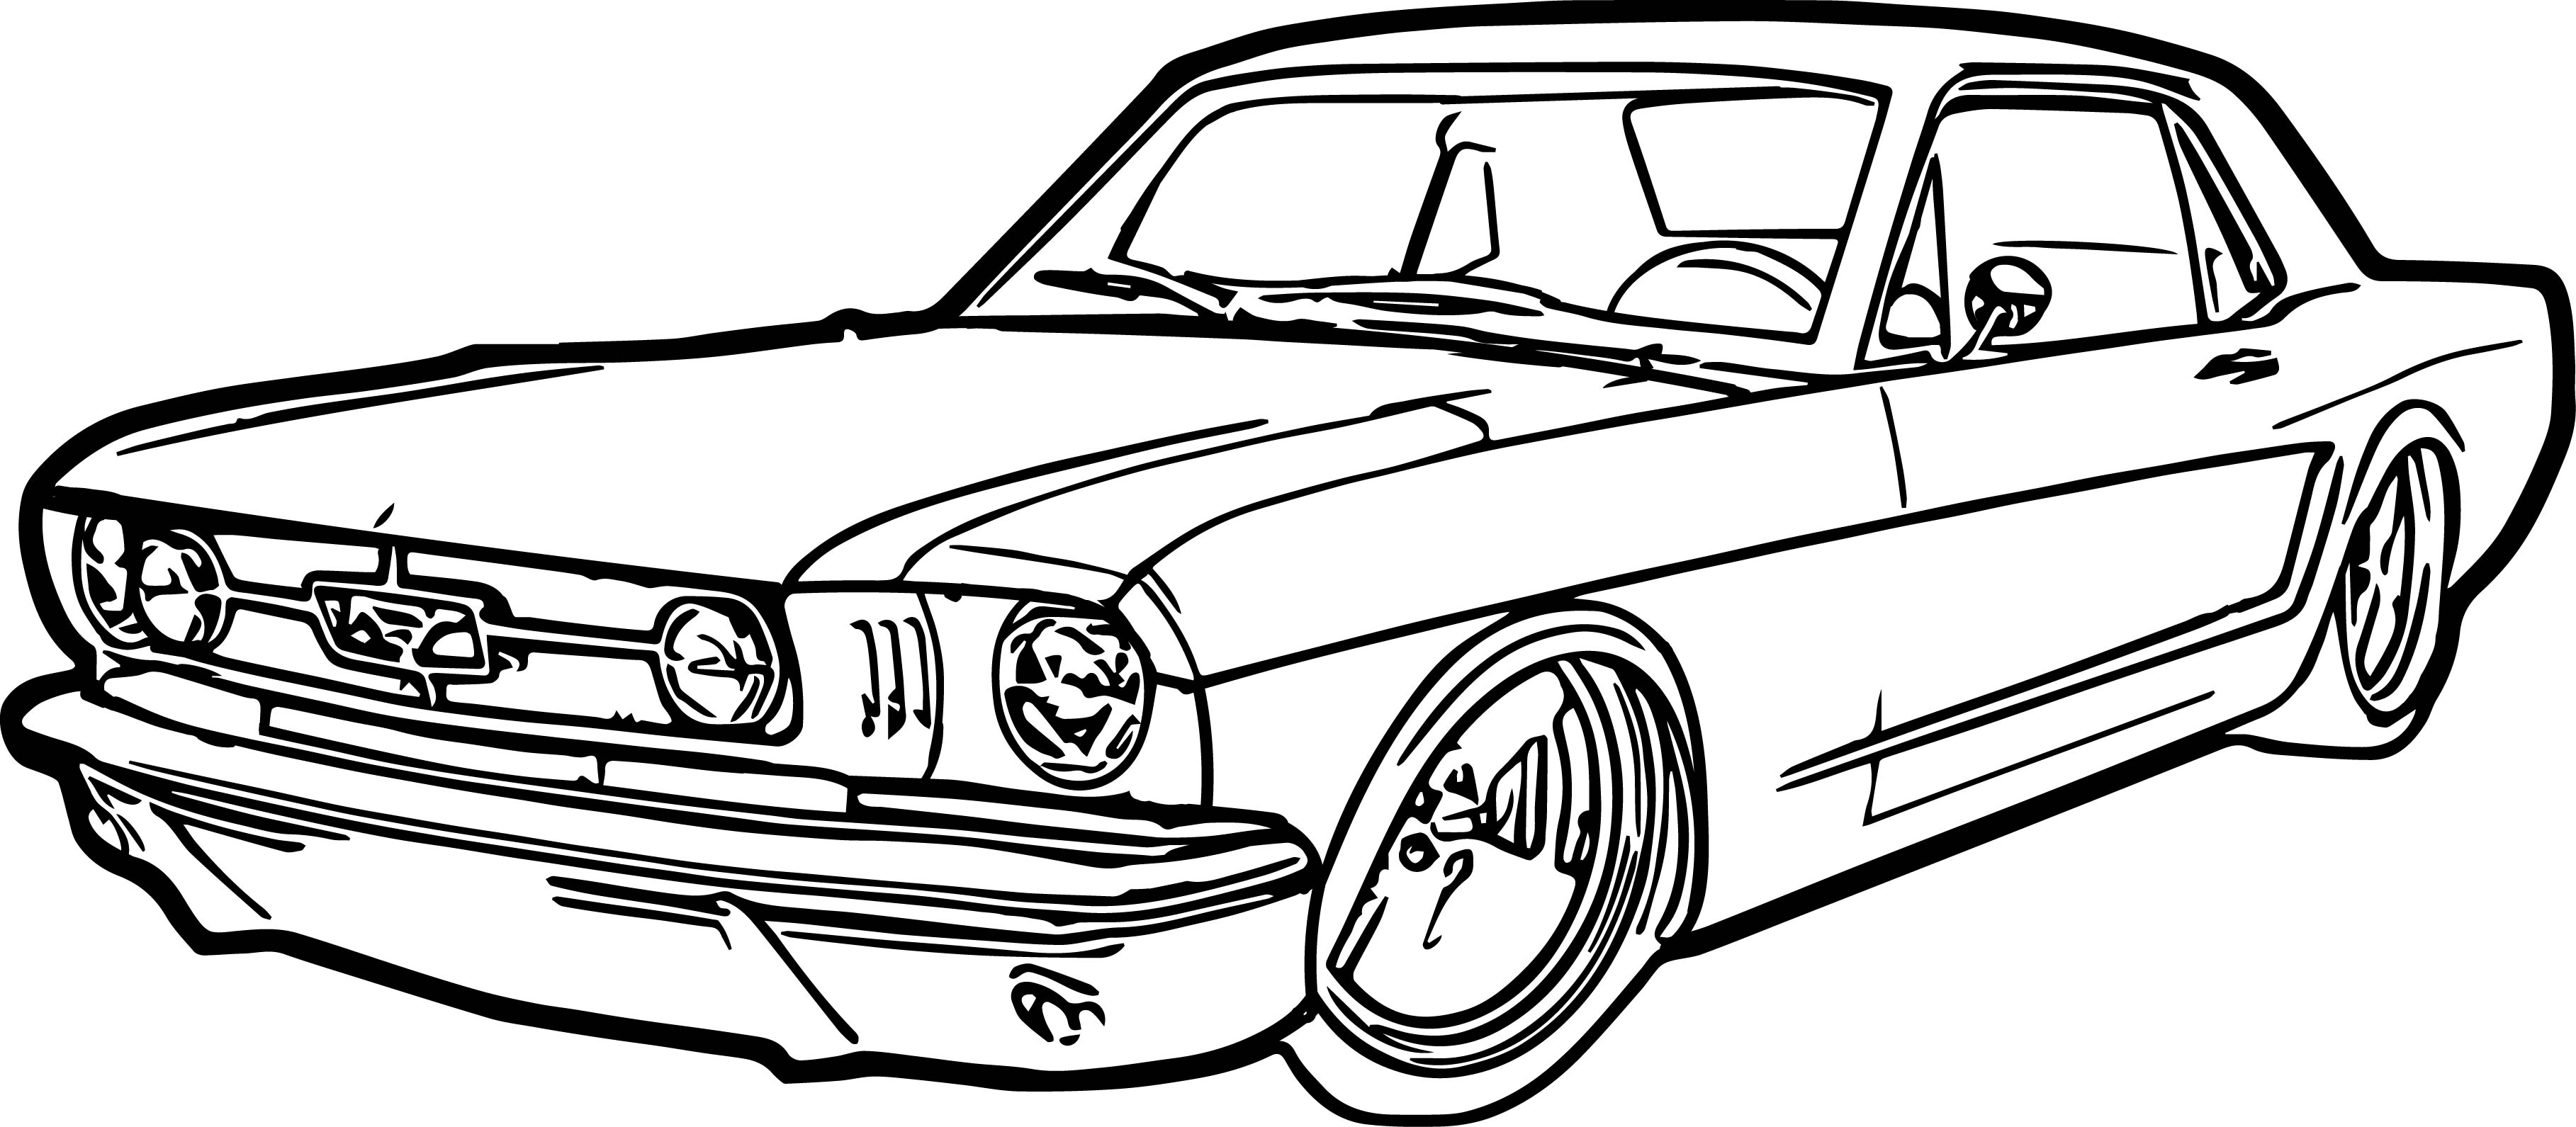 3635x1591 Camaro Coloring Pages. Beautiful Camaro Coloring Page 13 About